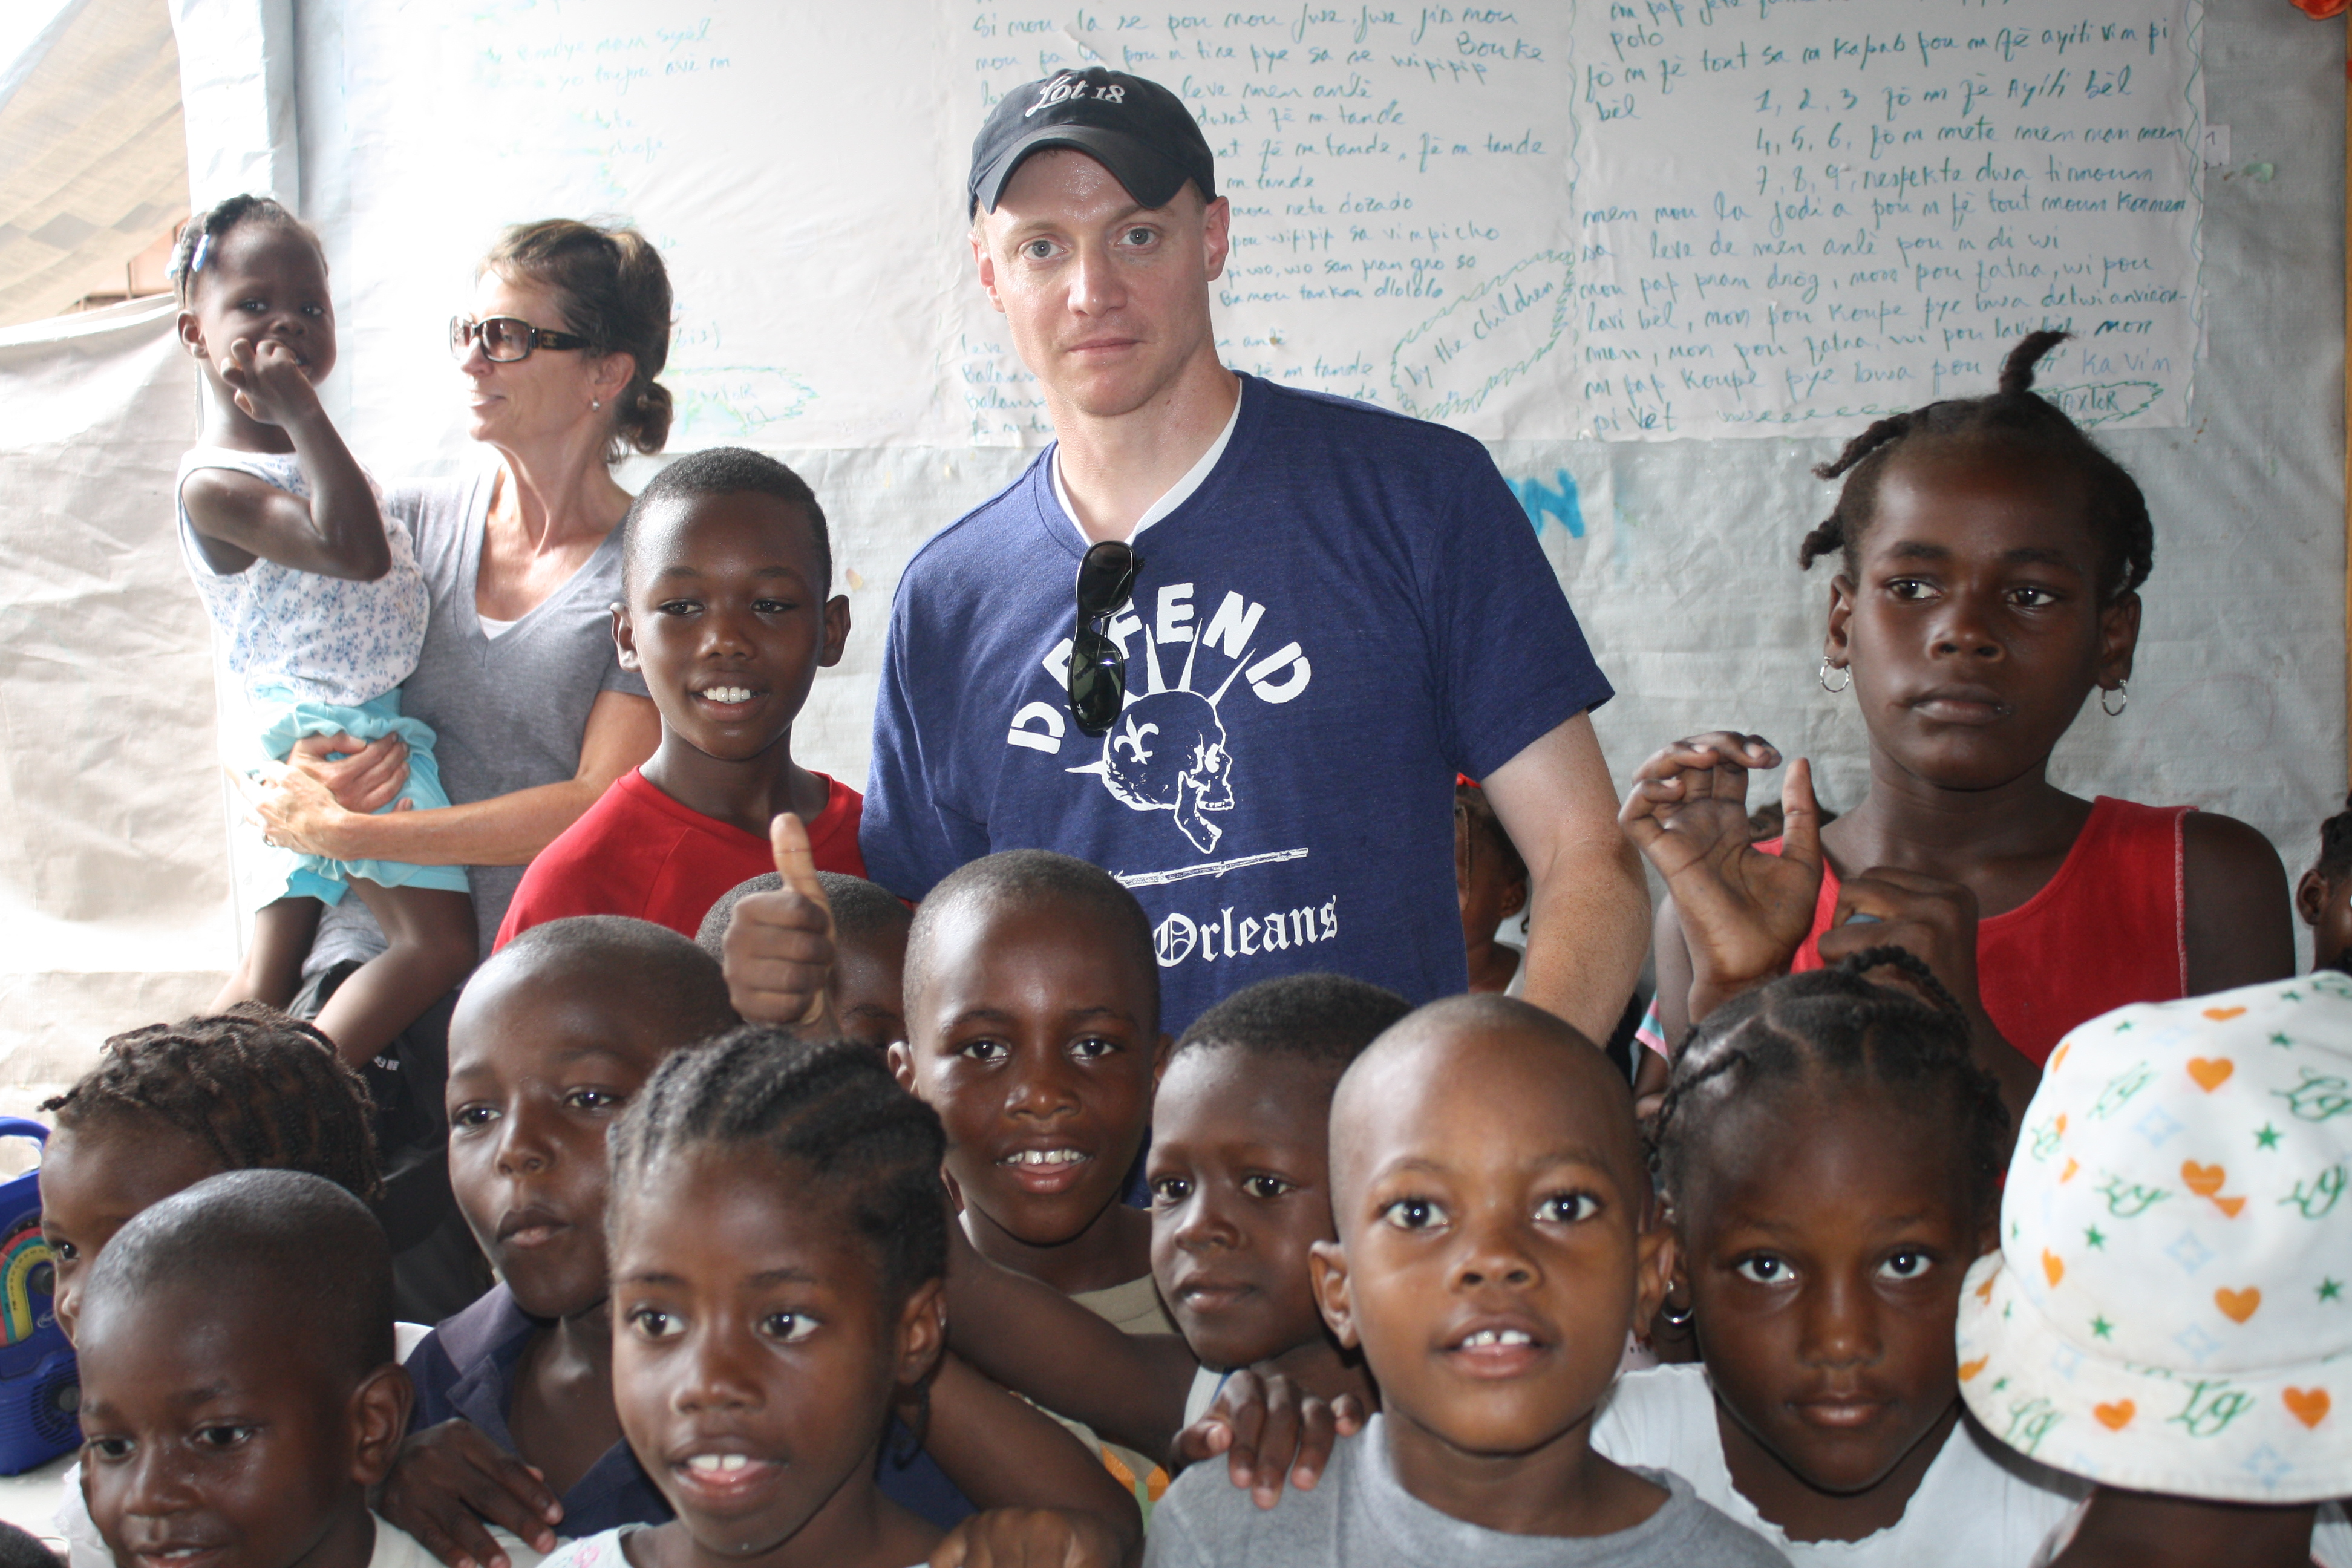 Fortuna, center in hat, visiting Concern's relief efforts in Haiti. (Courtesy Kevin Fortuna)